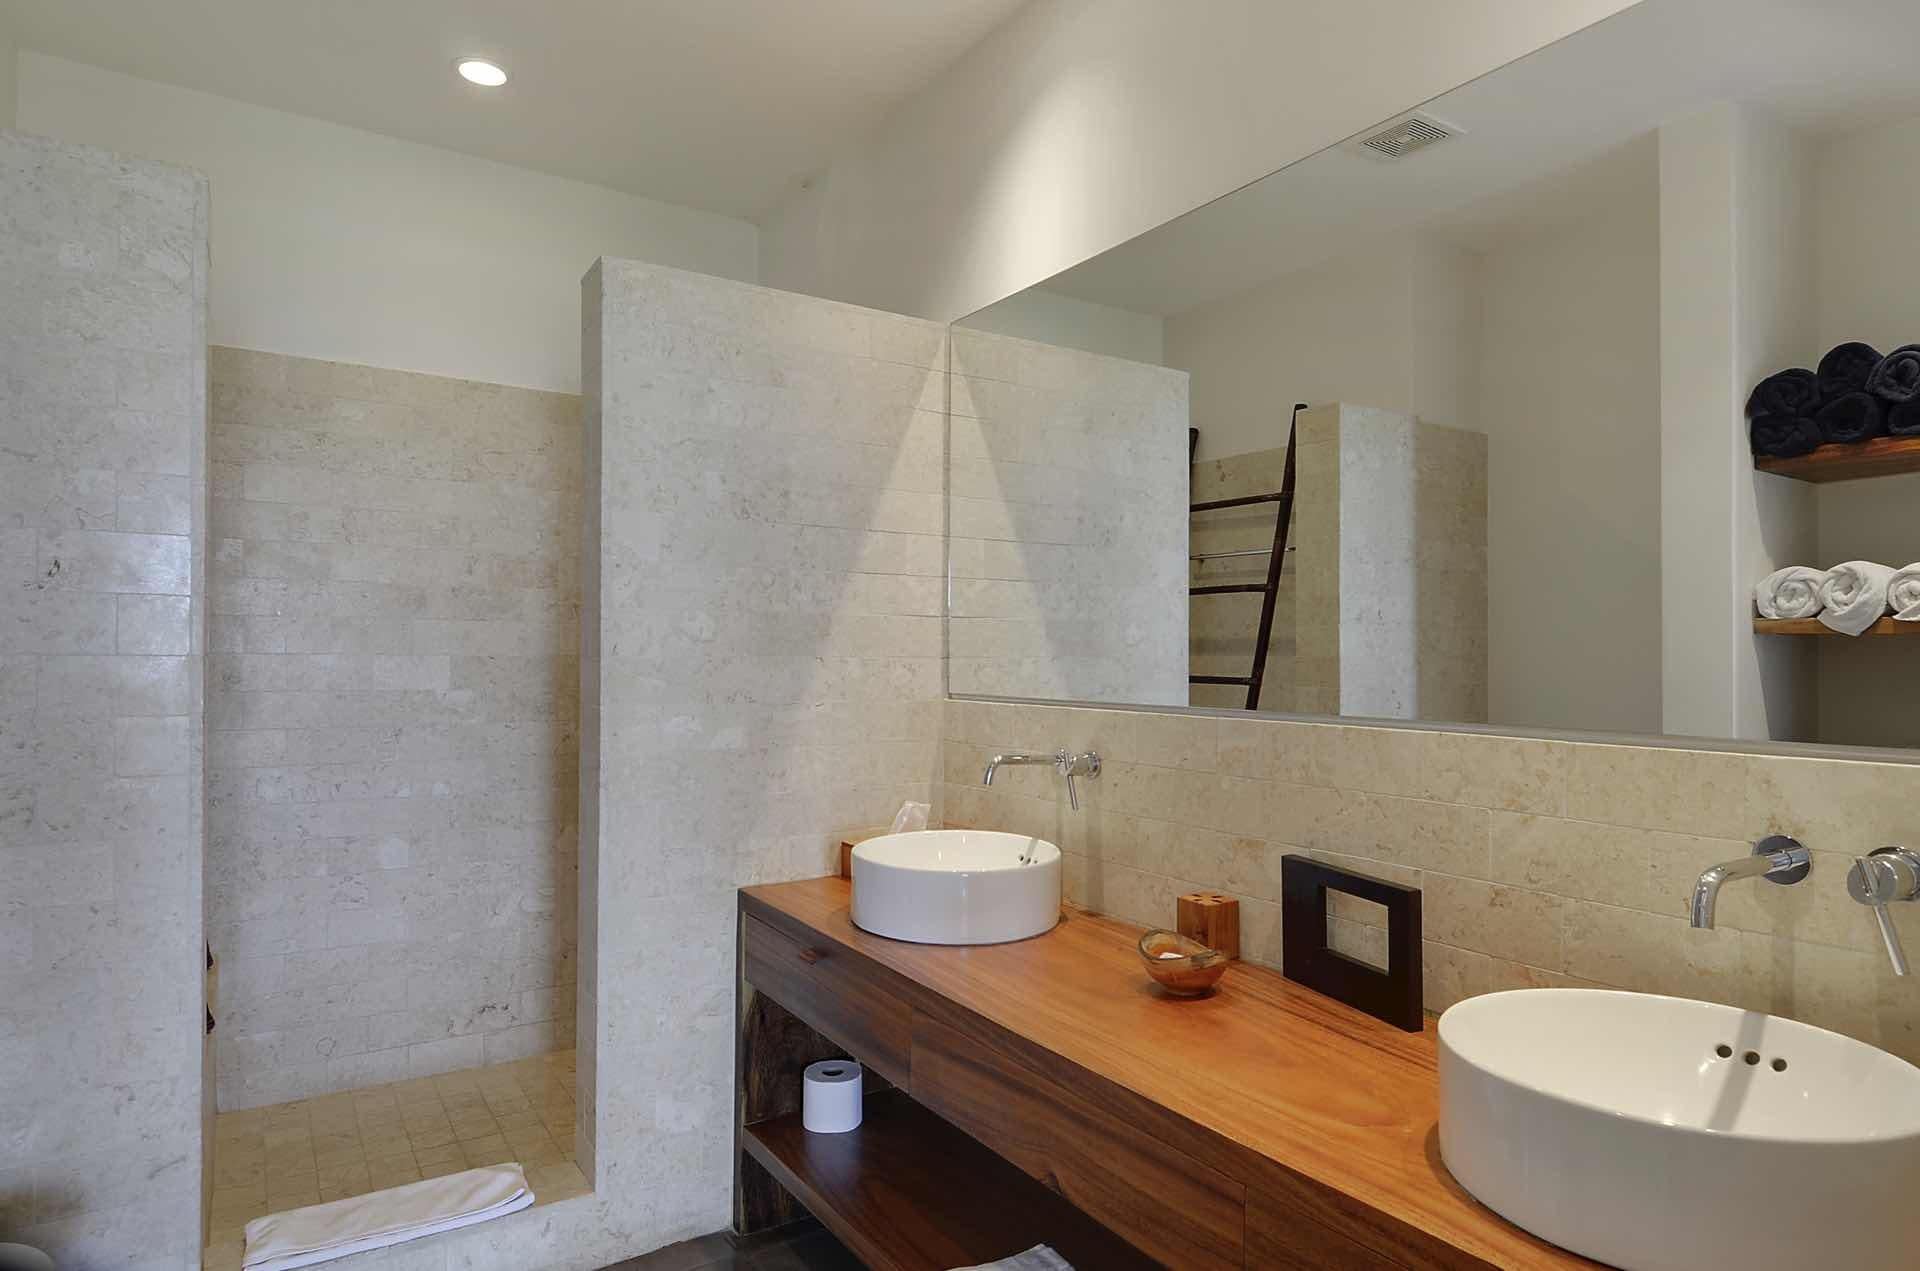 Double sinks and stone-tiled shower